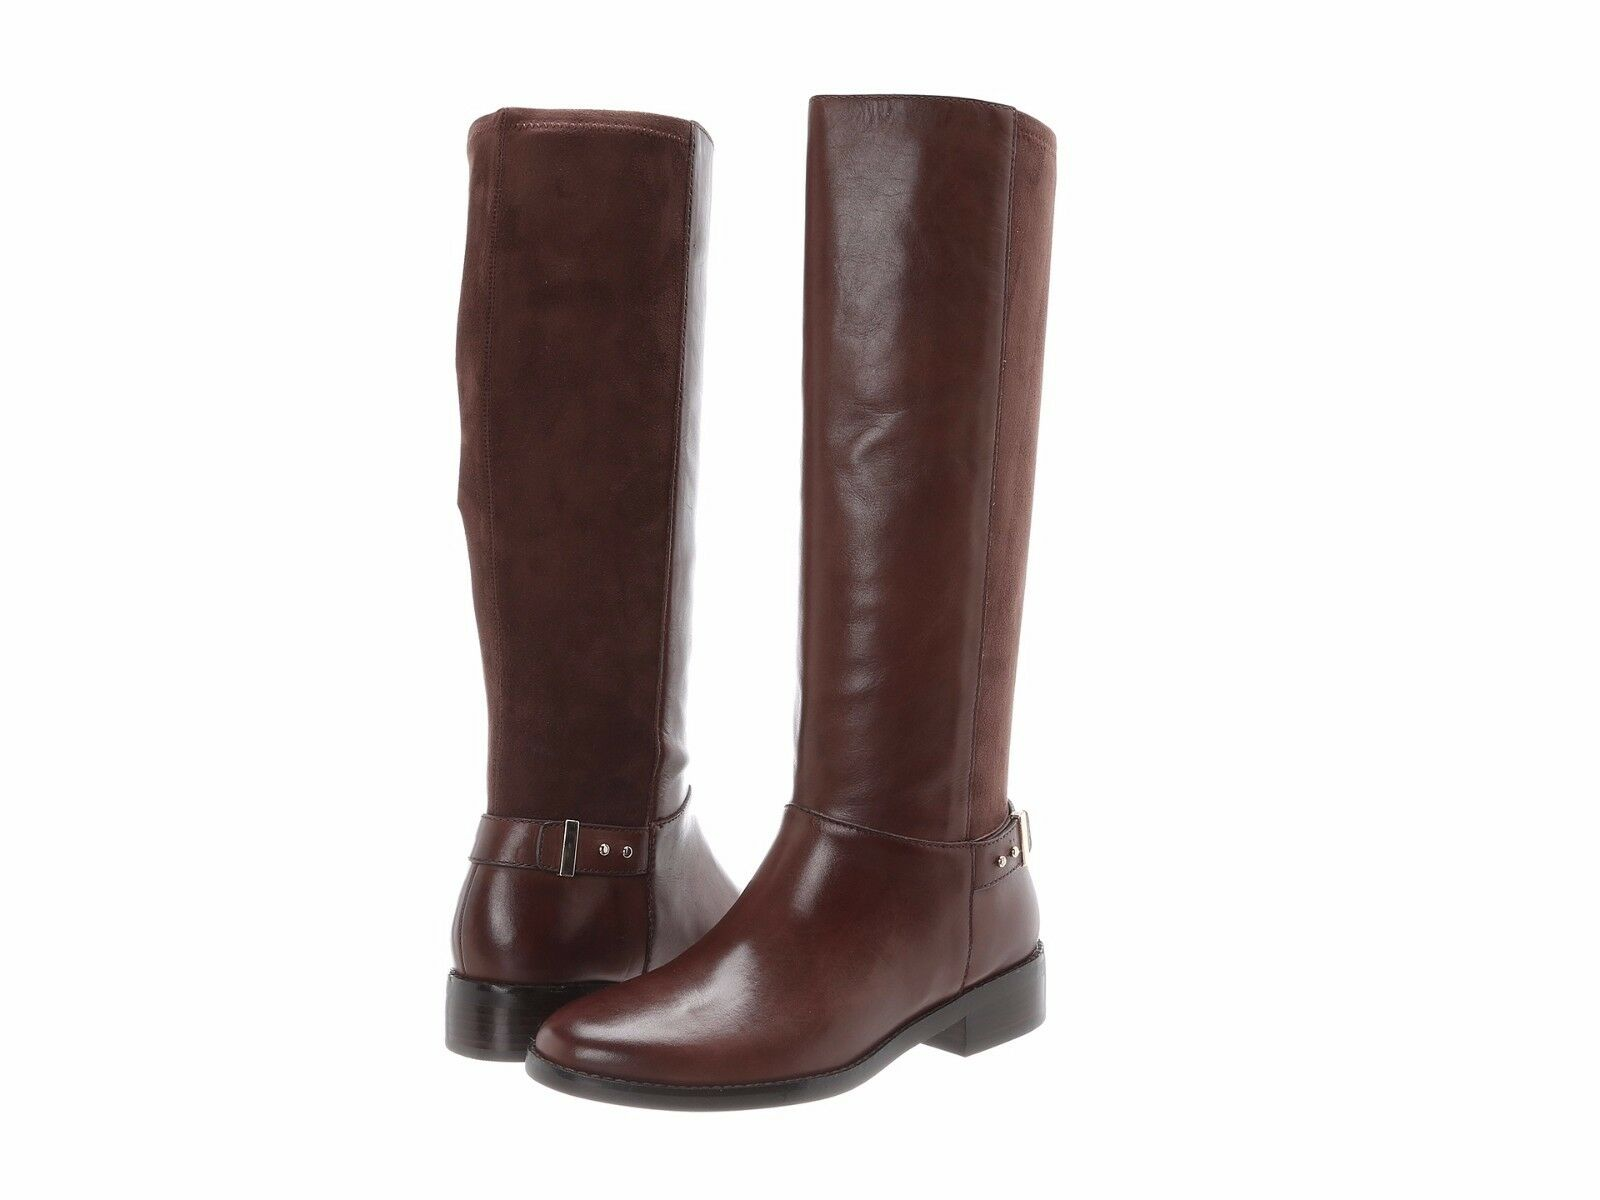 Cole Haan Adler Tall Riding stivali Chestnut Marronee Leather Dimensione 5M New MSRP  378